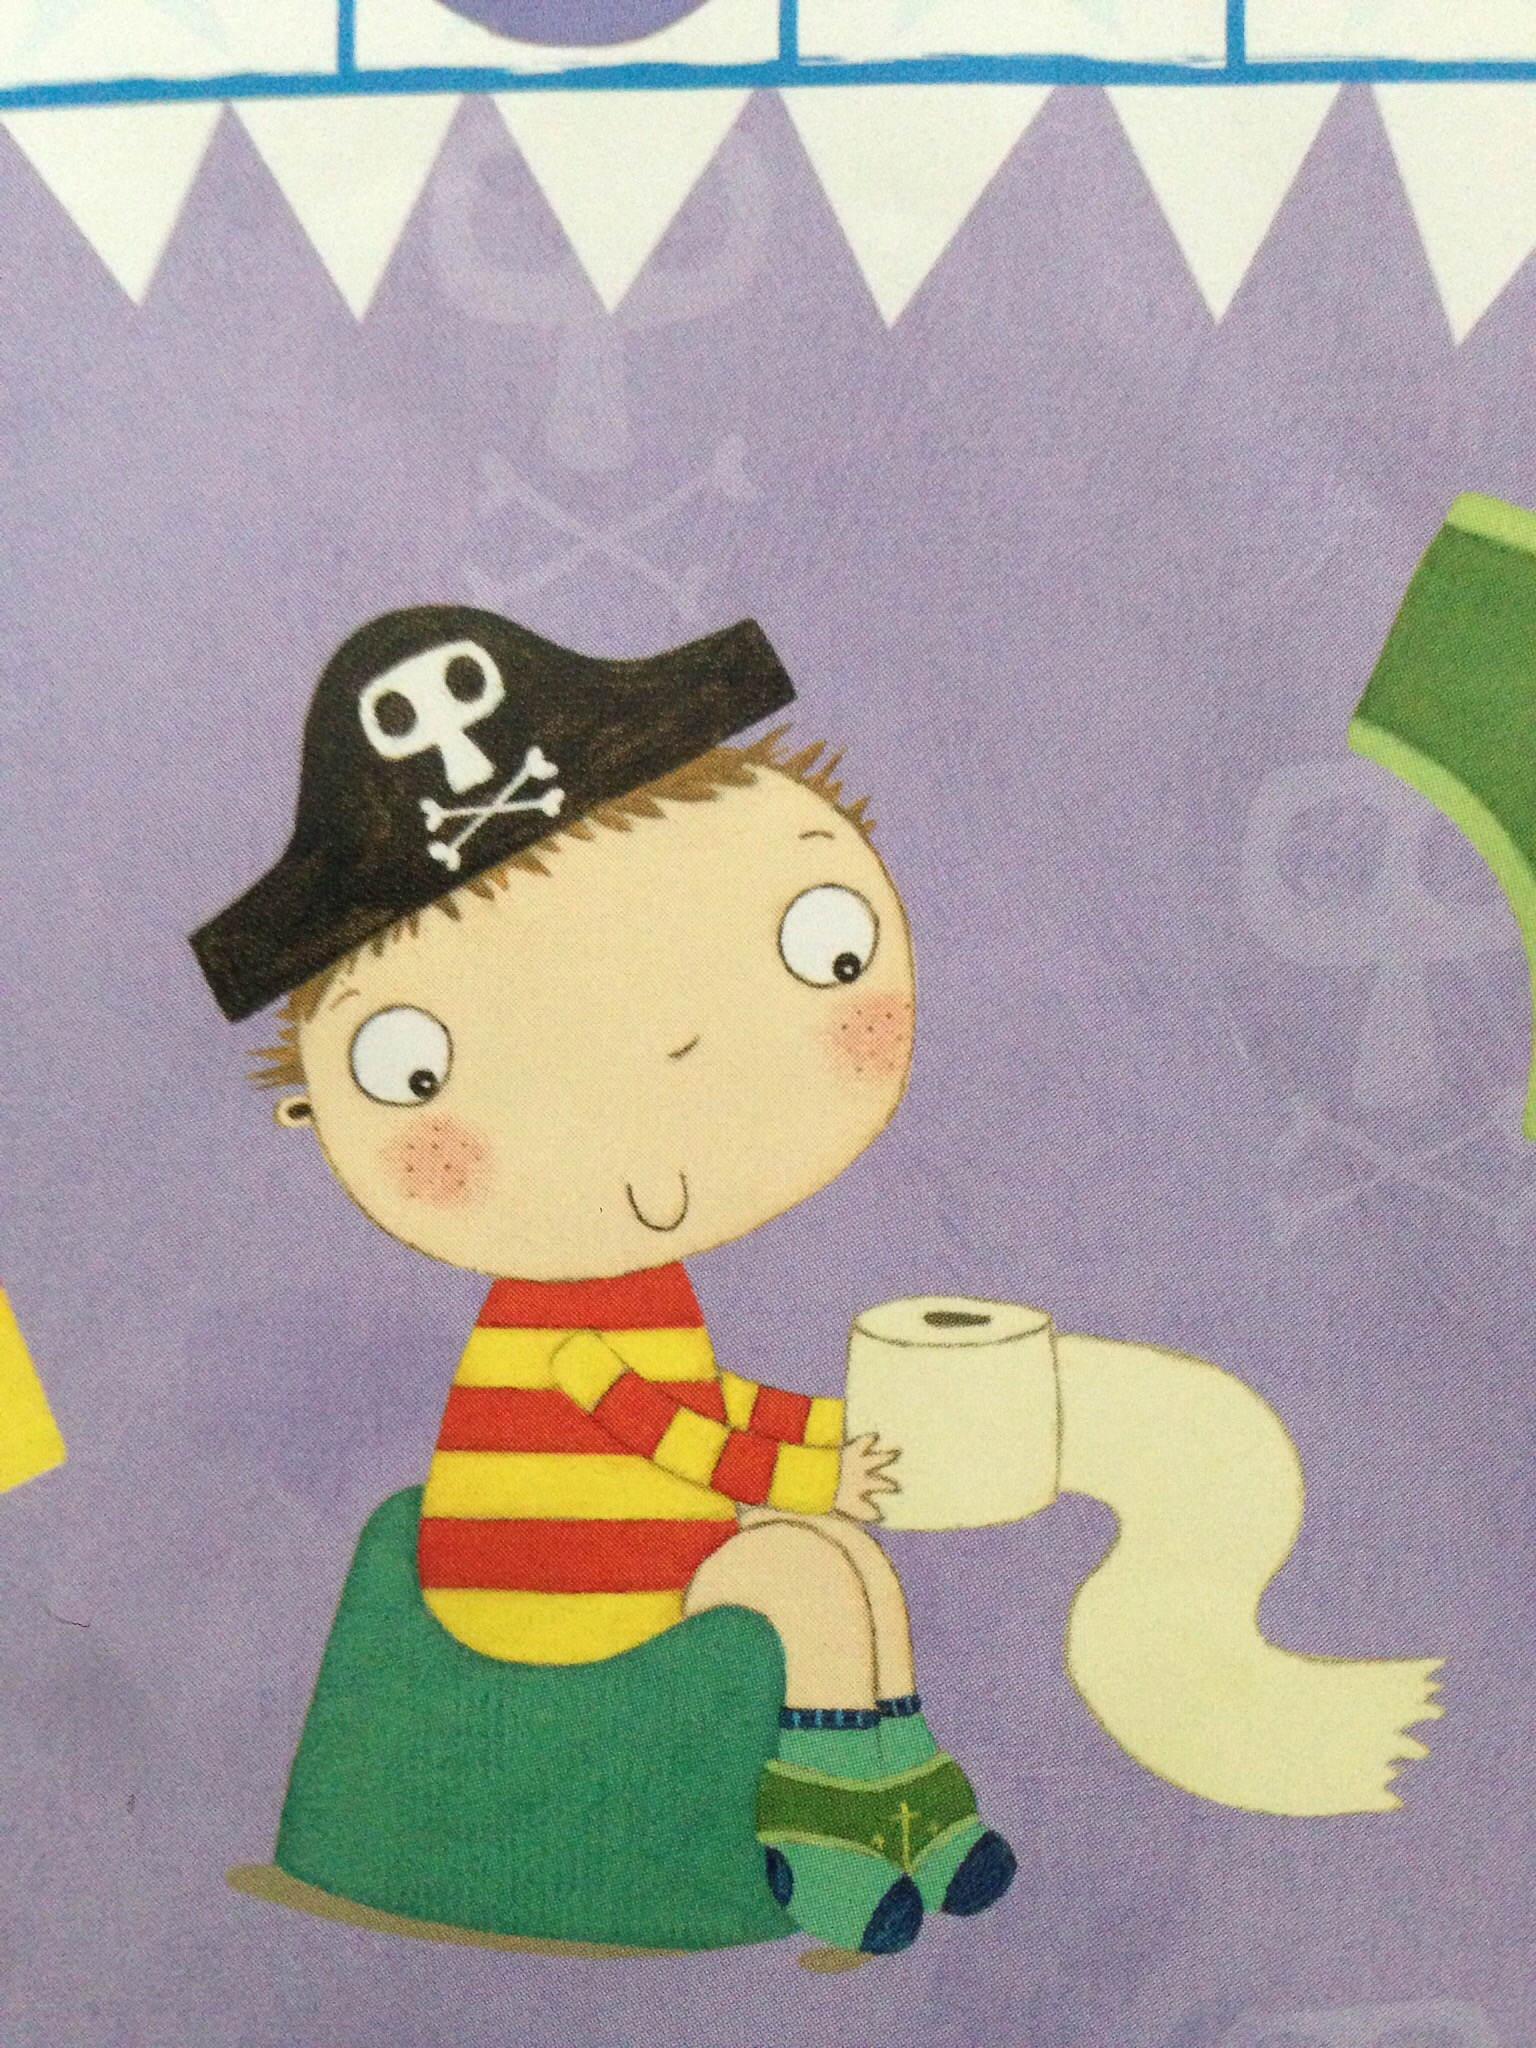 pirate pete on the potty